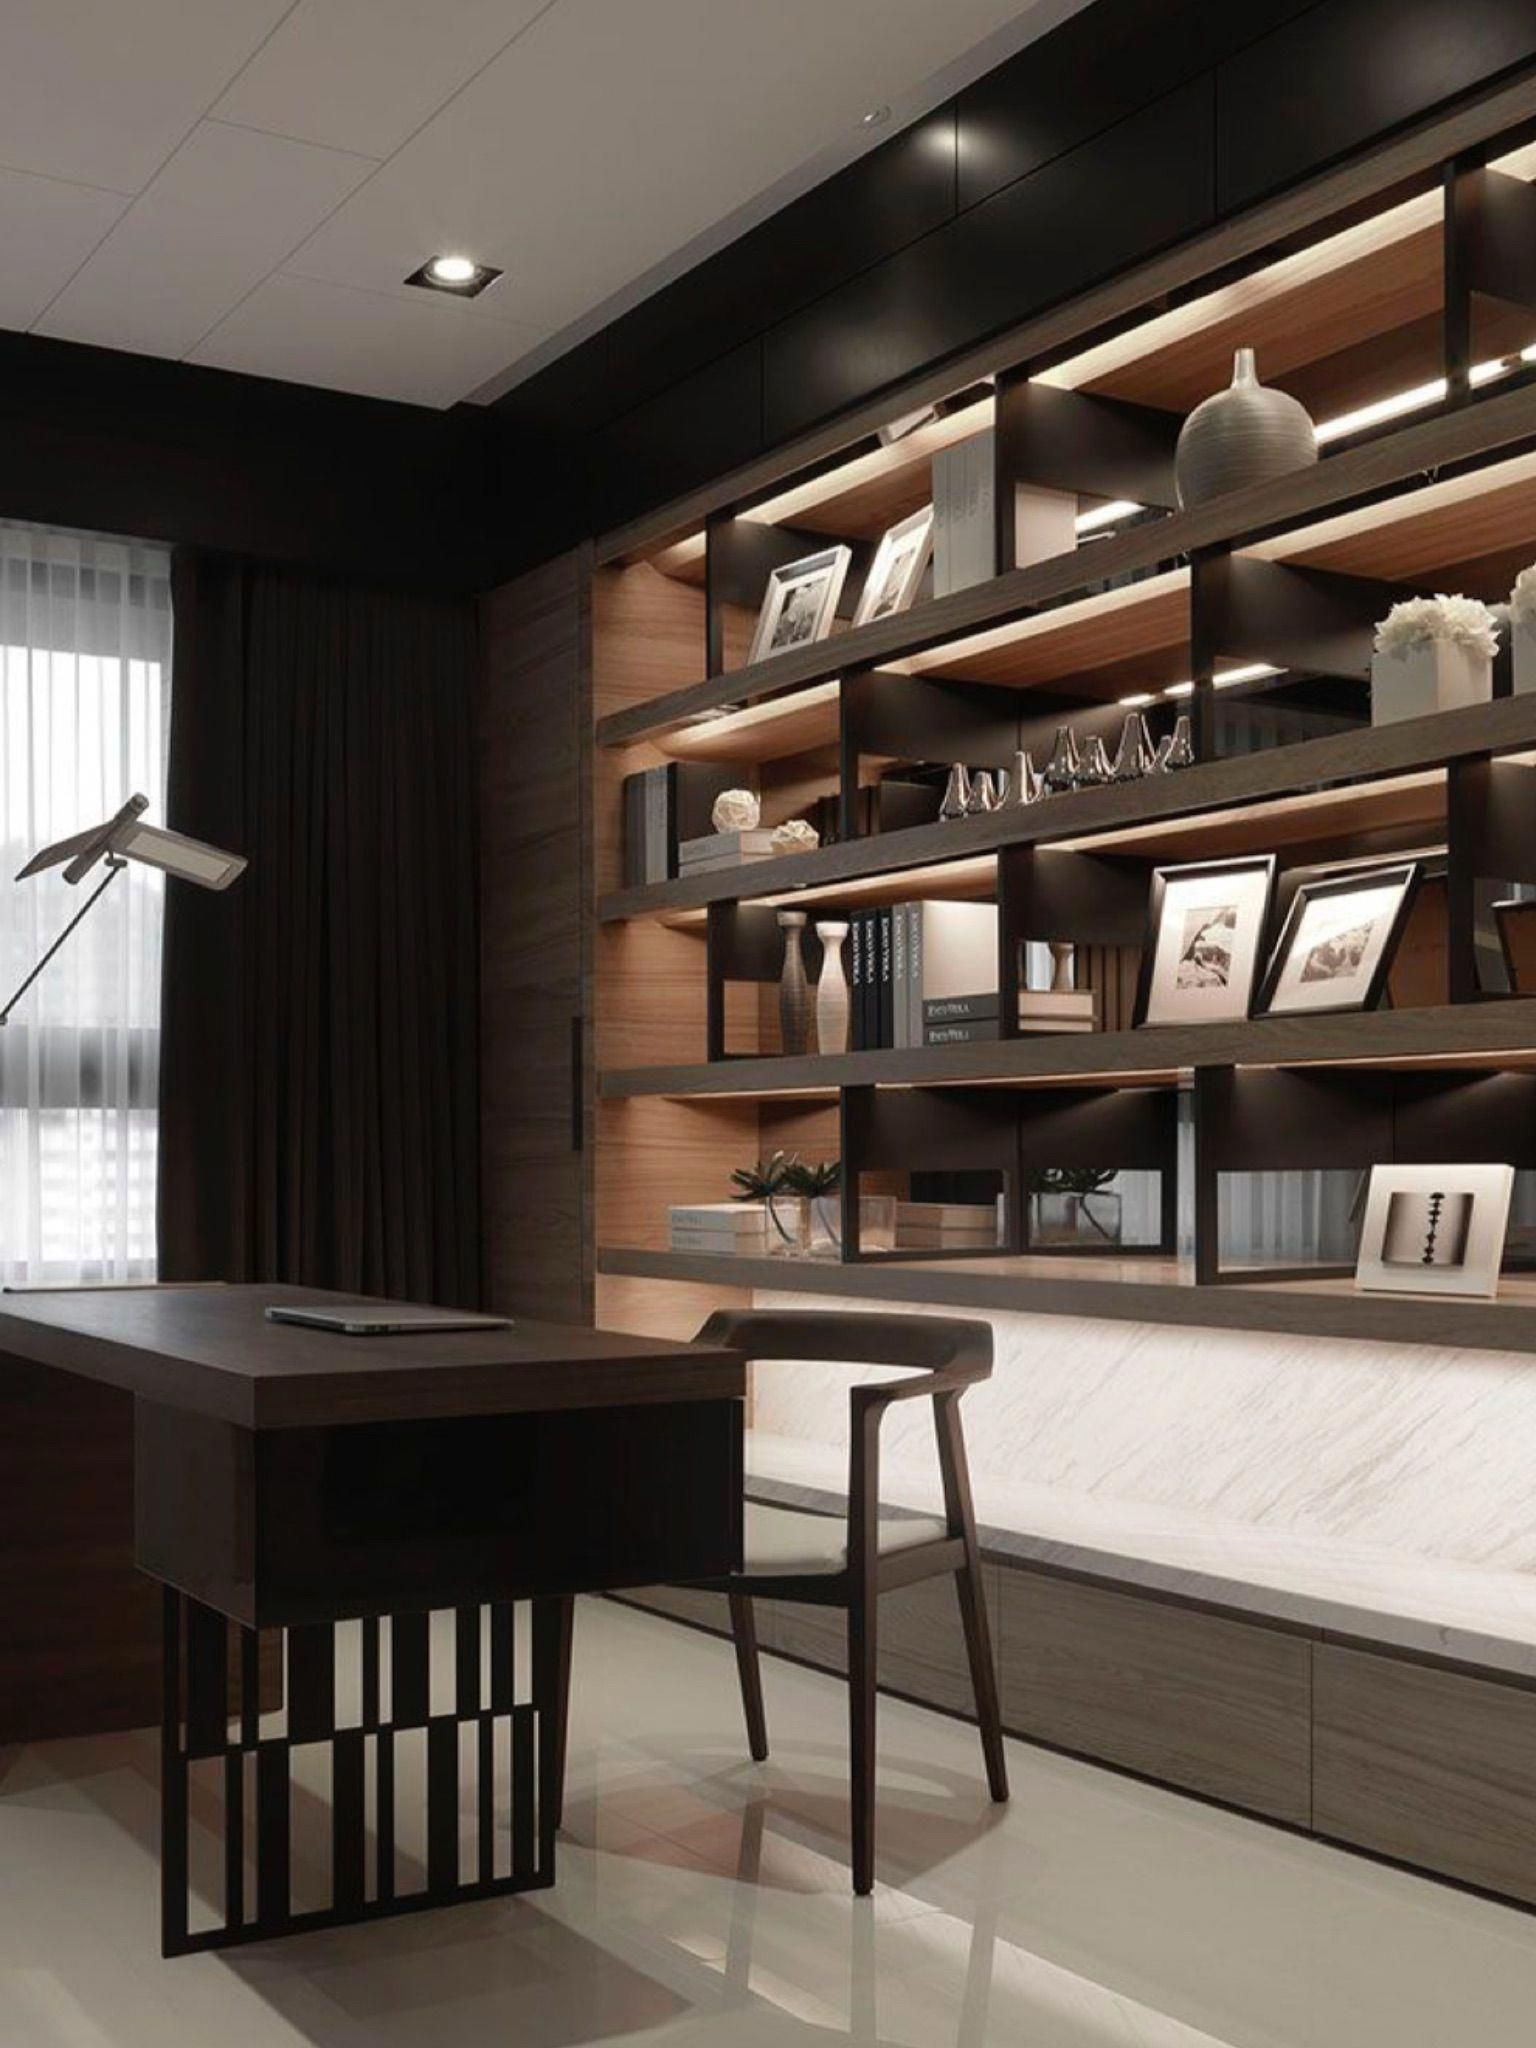 Interior executive office design officedesigns also best designs images in rh pinterest